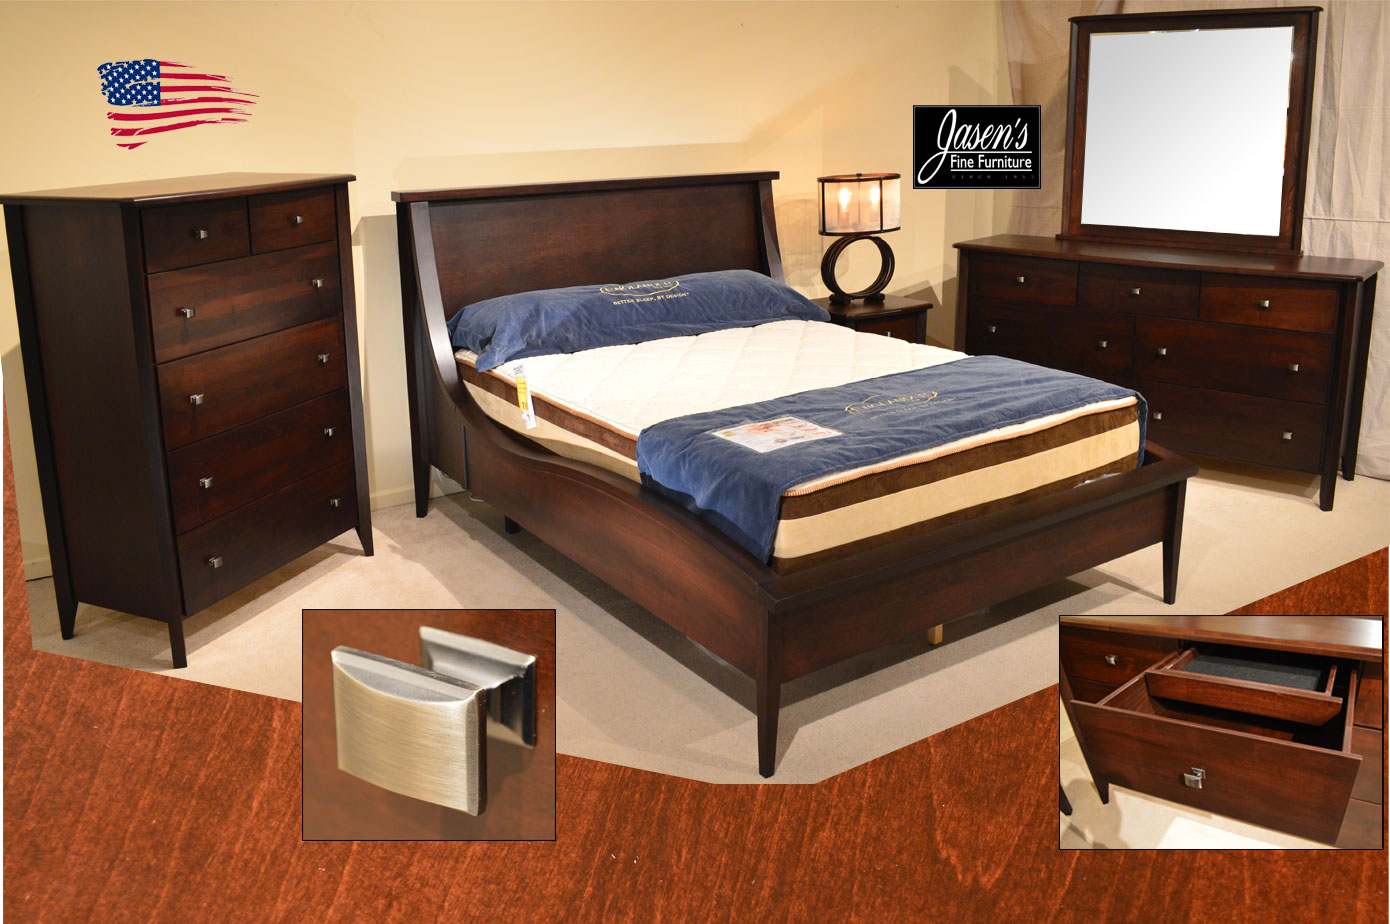 Urban Wave Bed Jasen 39 S Fine Furniture Since 1951